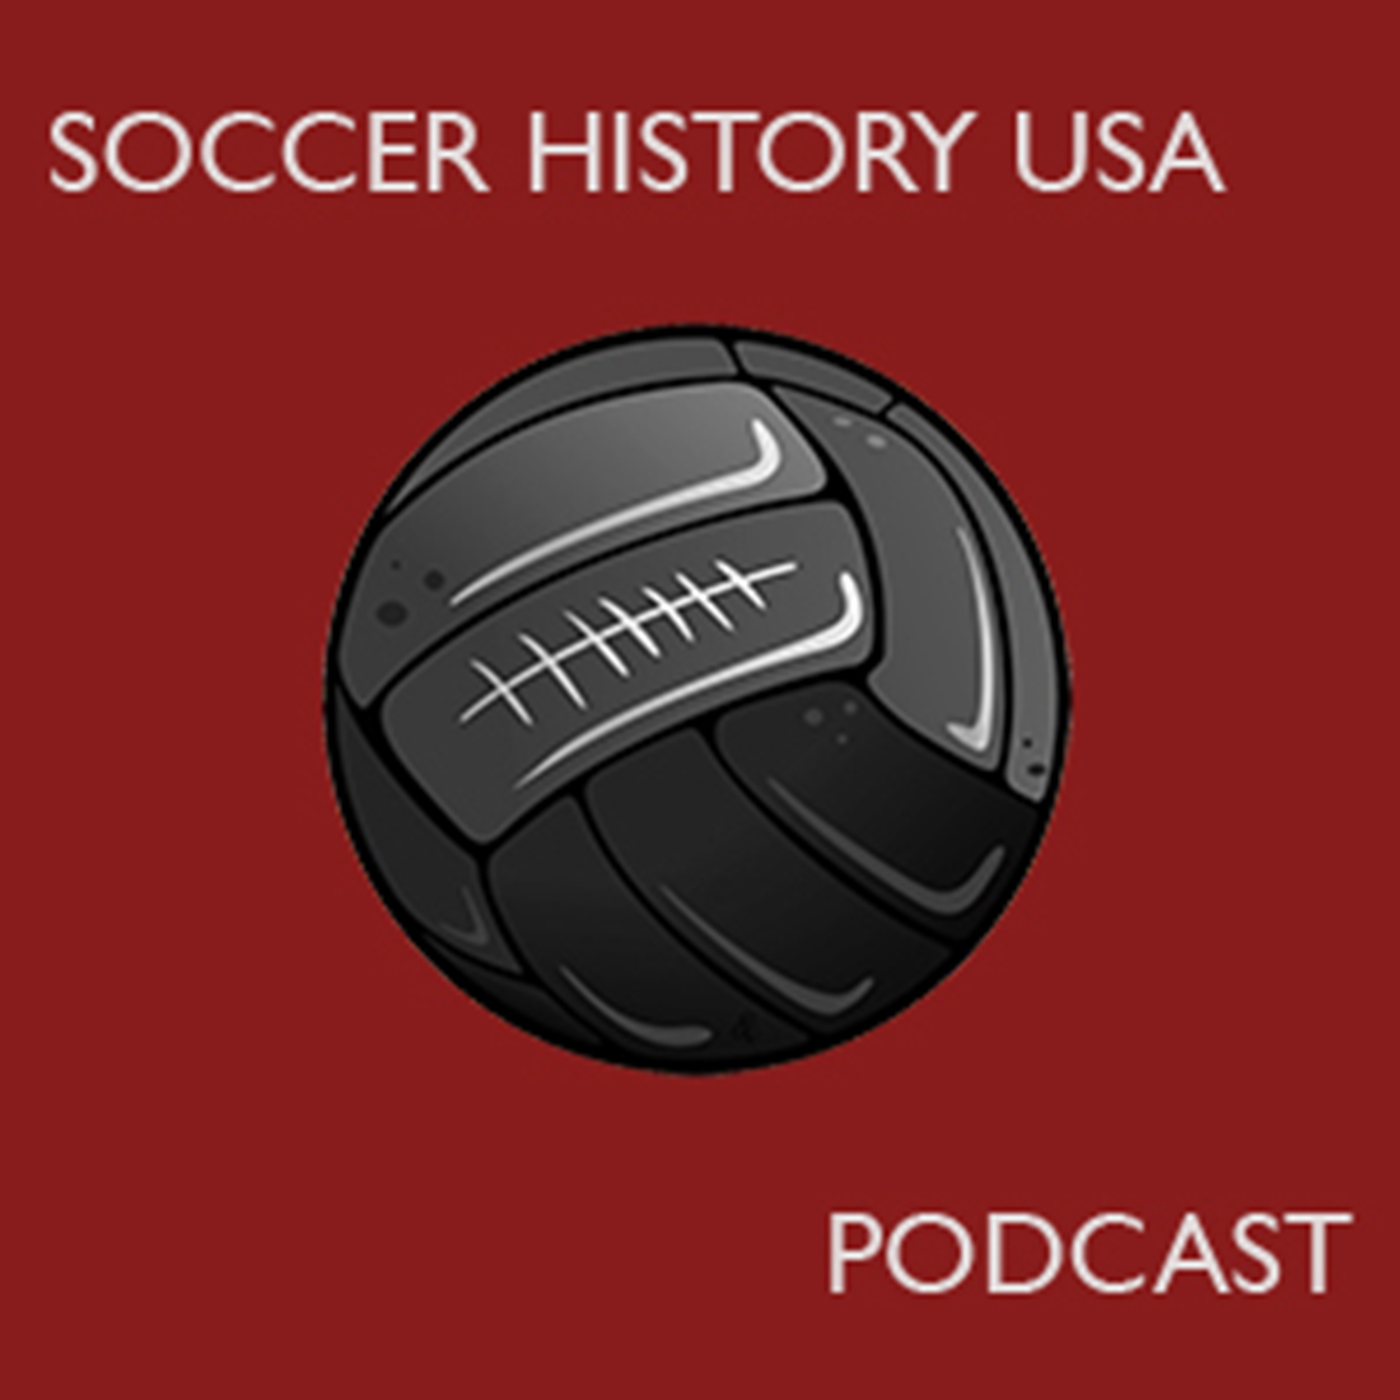 Soccer History USA Podcast